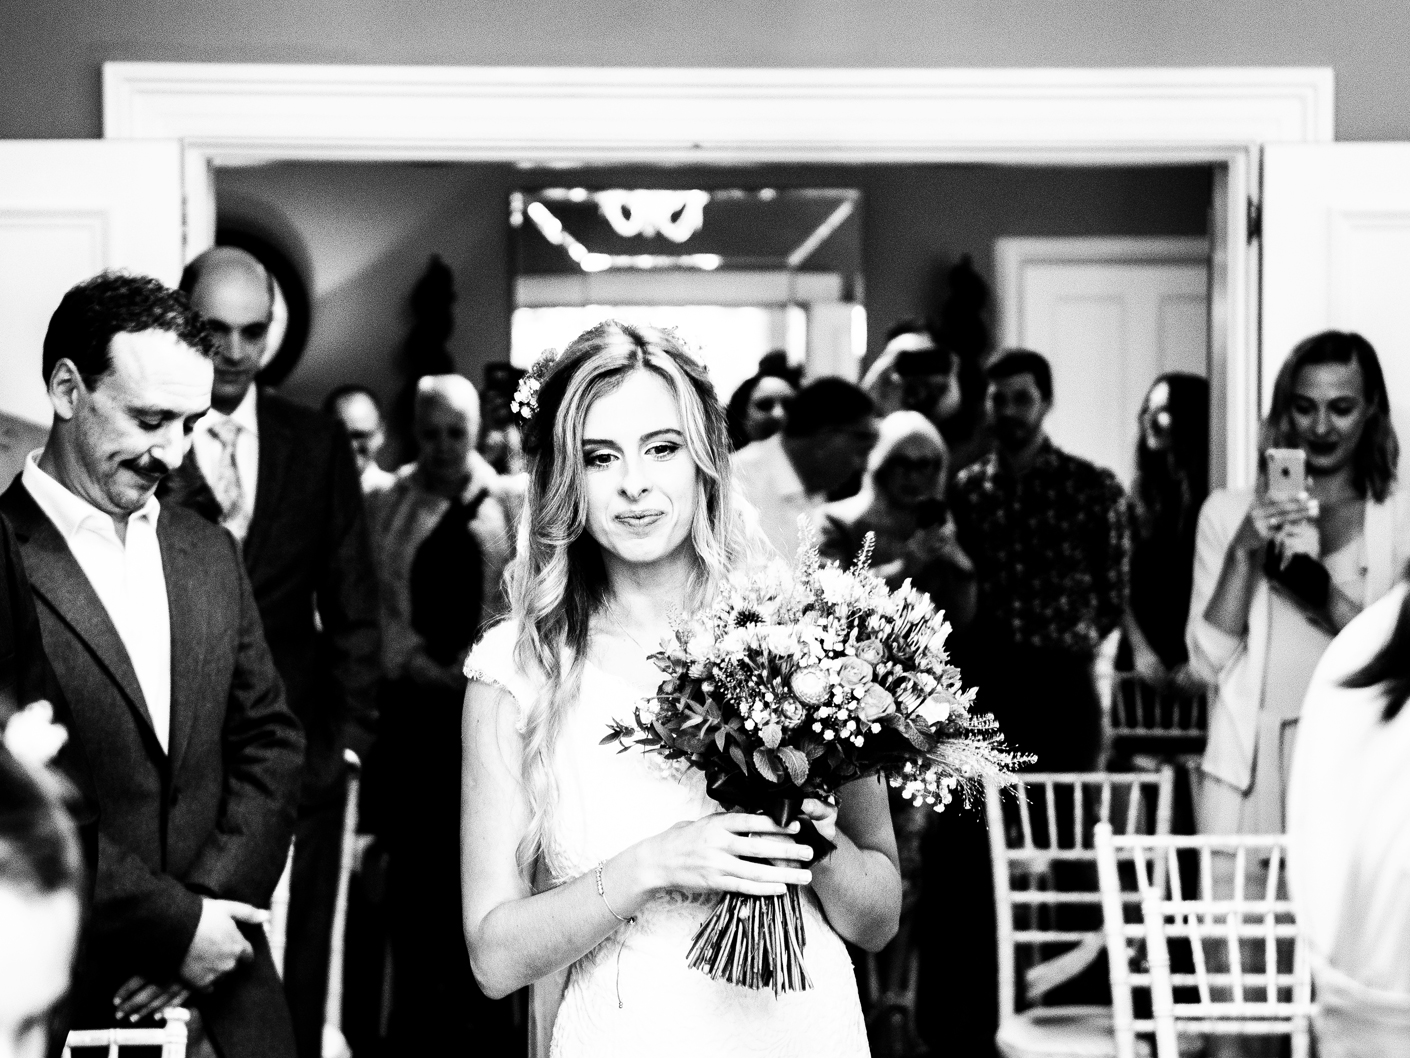 wedding-photography-of-the-bride-at-the-ceremony-in-didsbury-manchester